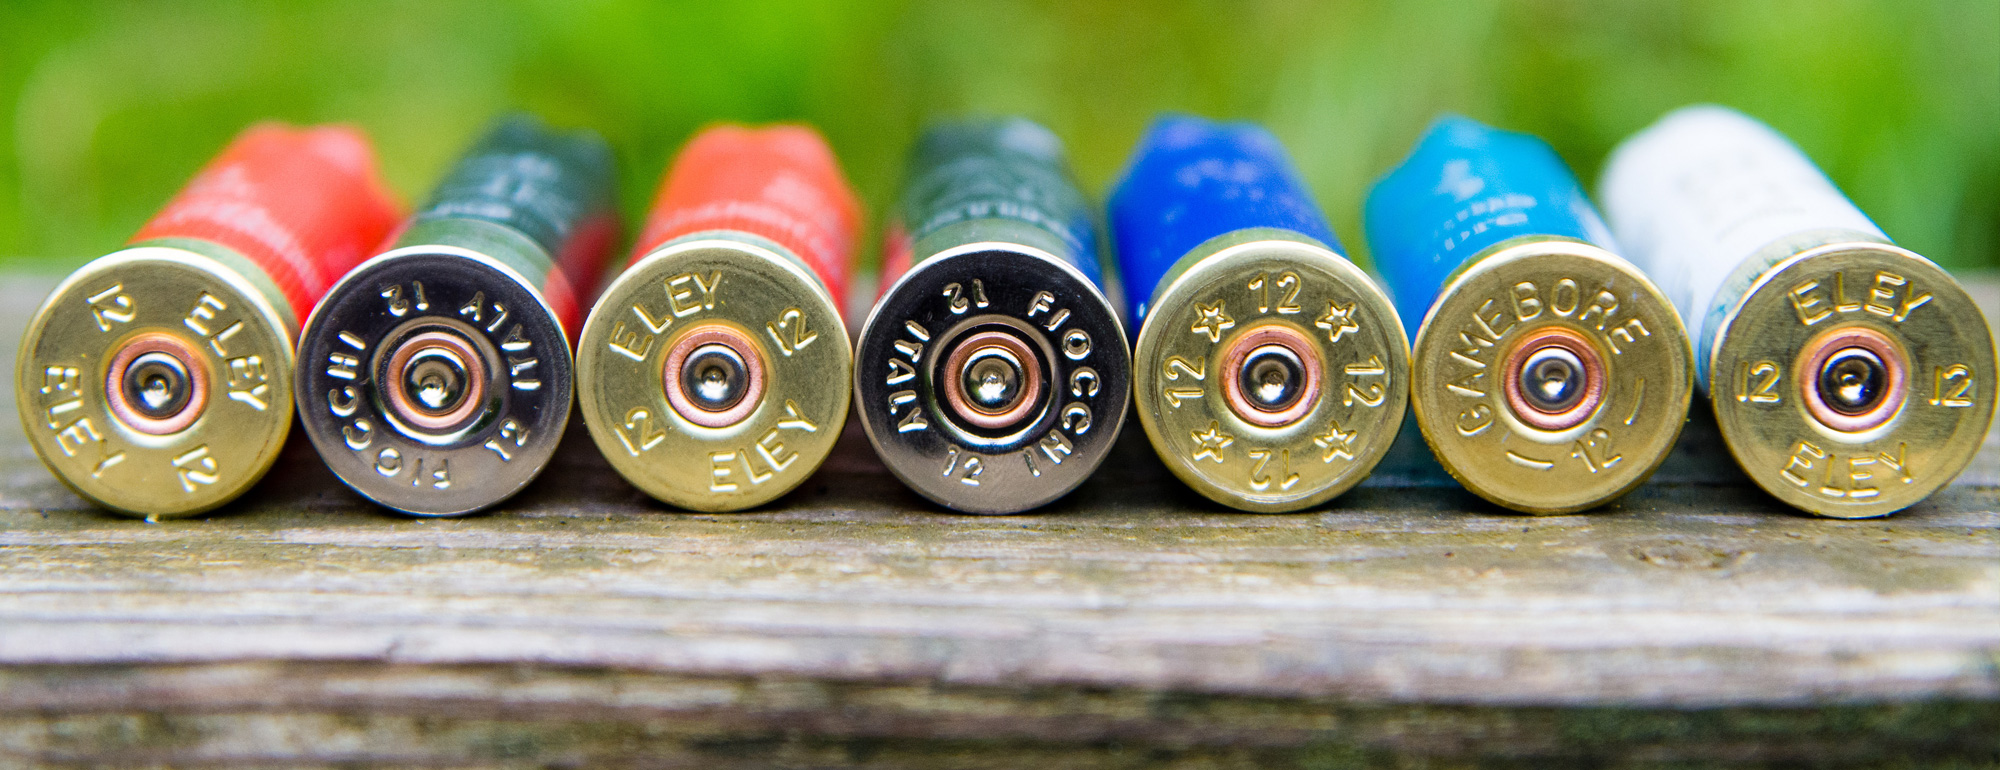 South West Shooting School Ilfracombe